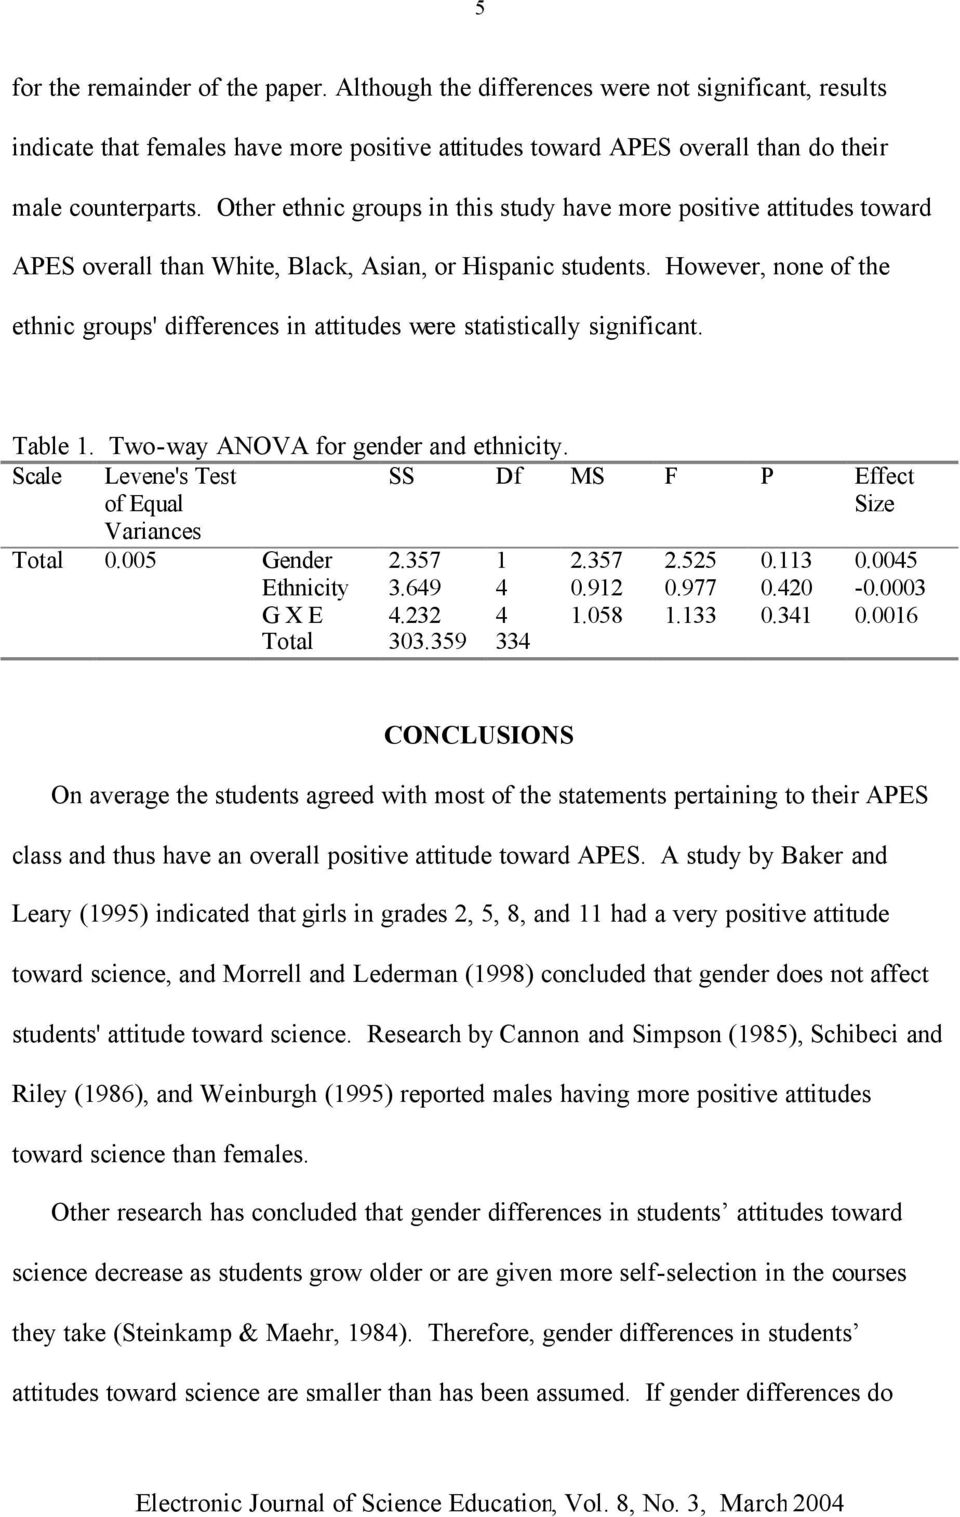 However, none of the ethnic groups' differences in attitudes were statistically significant. Table 1. Two-way ANOVA for gender and ethnicity. Scale Levene's Test of Equal Variances Total 0.